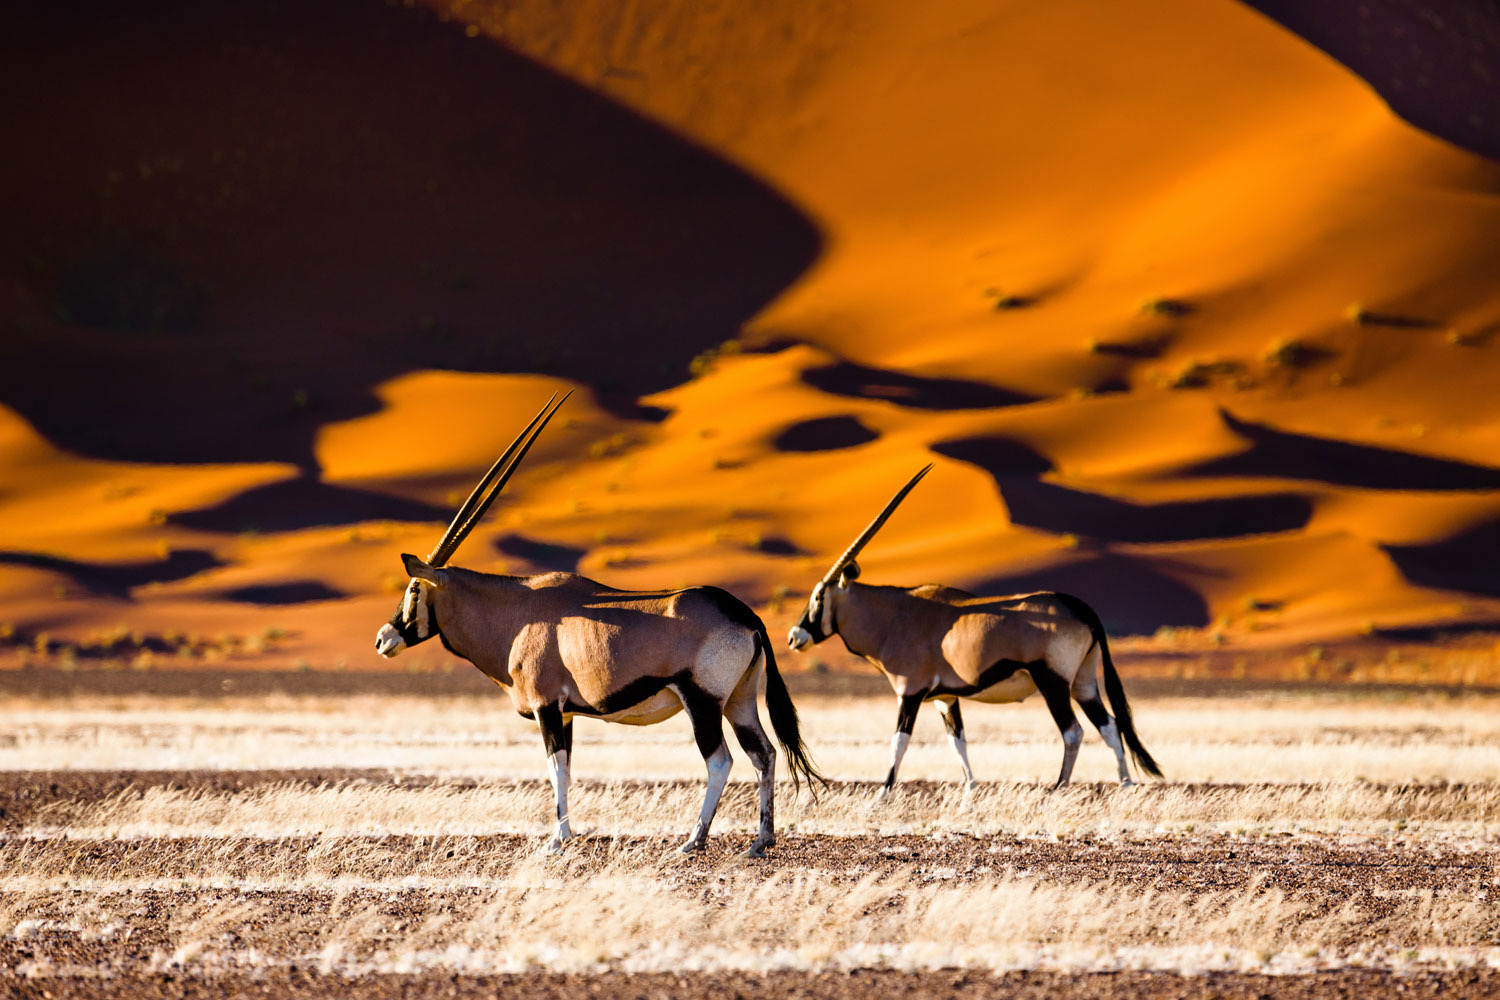 Namibia Luxury Safari Oryx and dunes - Sossusvlei - Namibia - Safari - Namibia